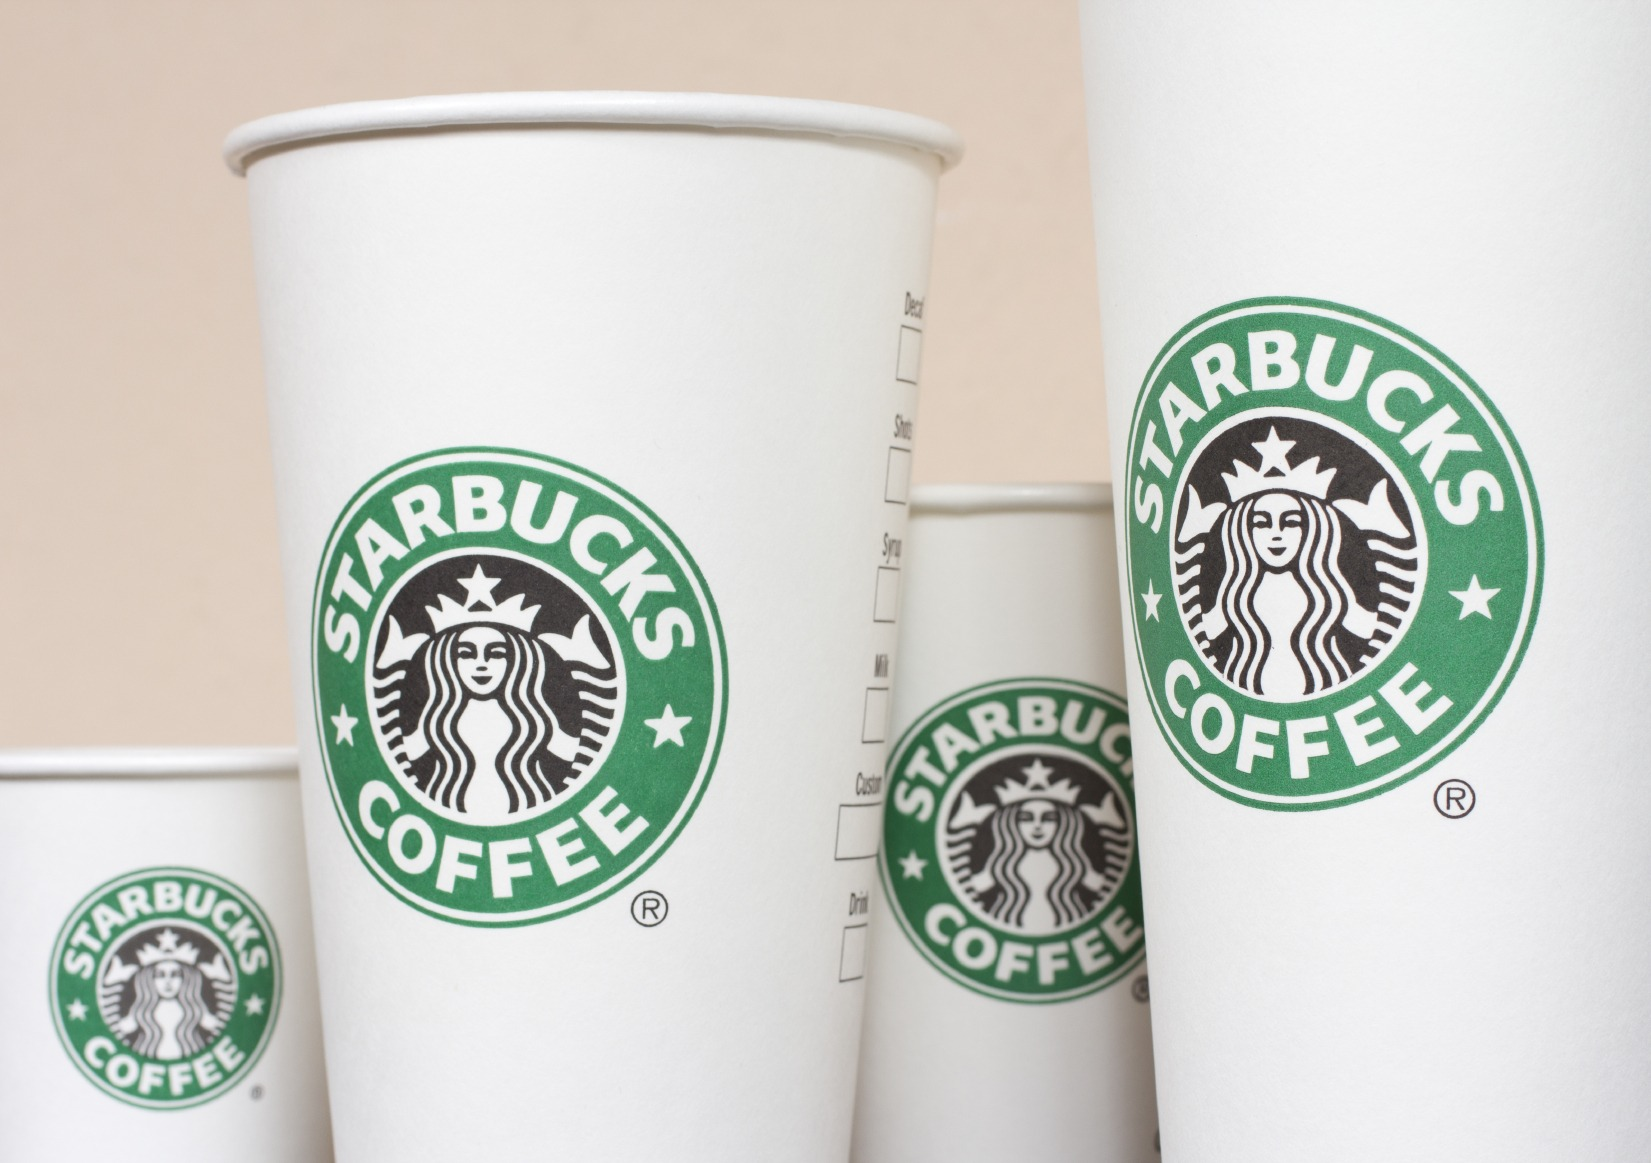 Our Weekly Economic News Roundup and Starbucks coffee prices